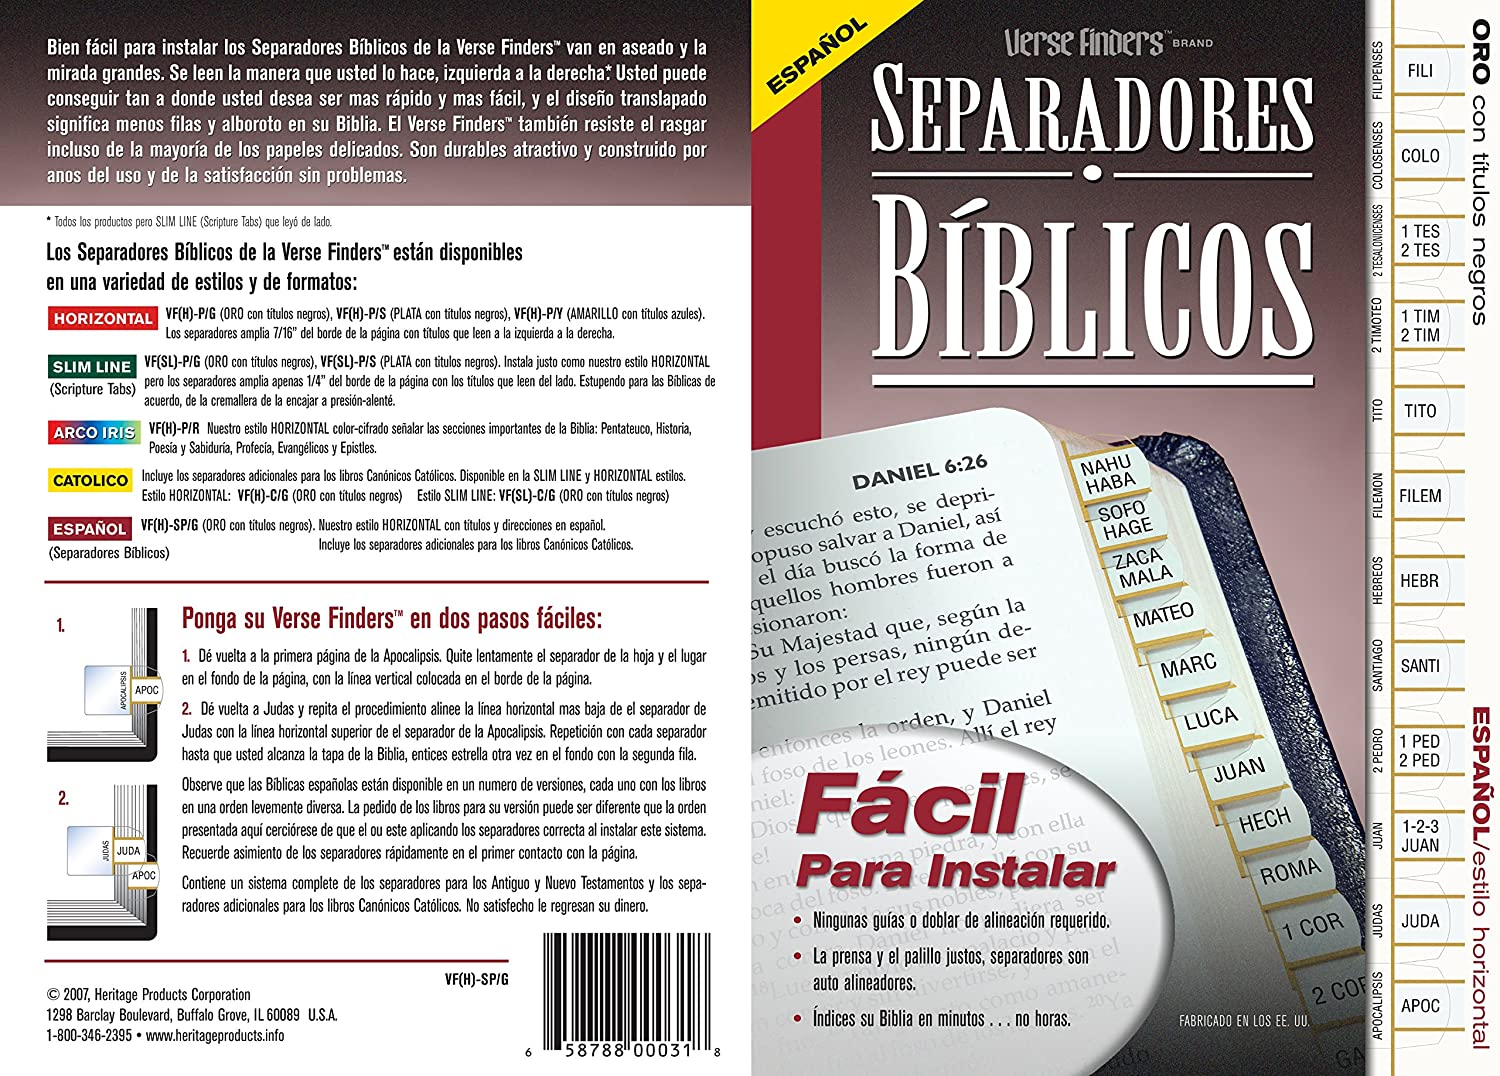 1 X Separadores Espanol Don't miss the campaign Biblicos Year-end gift